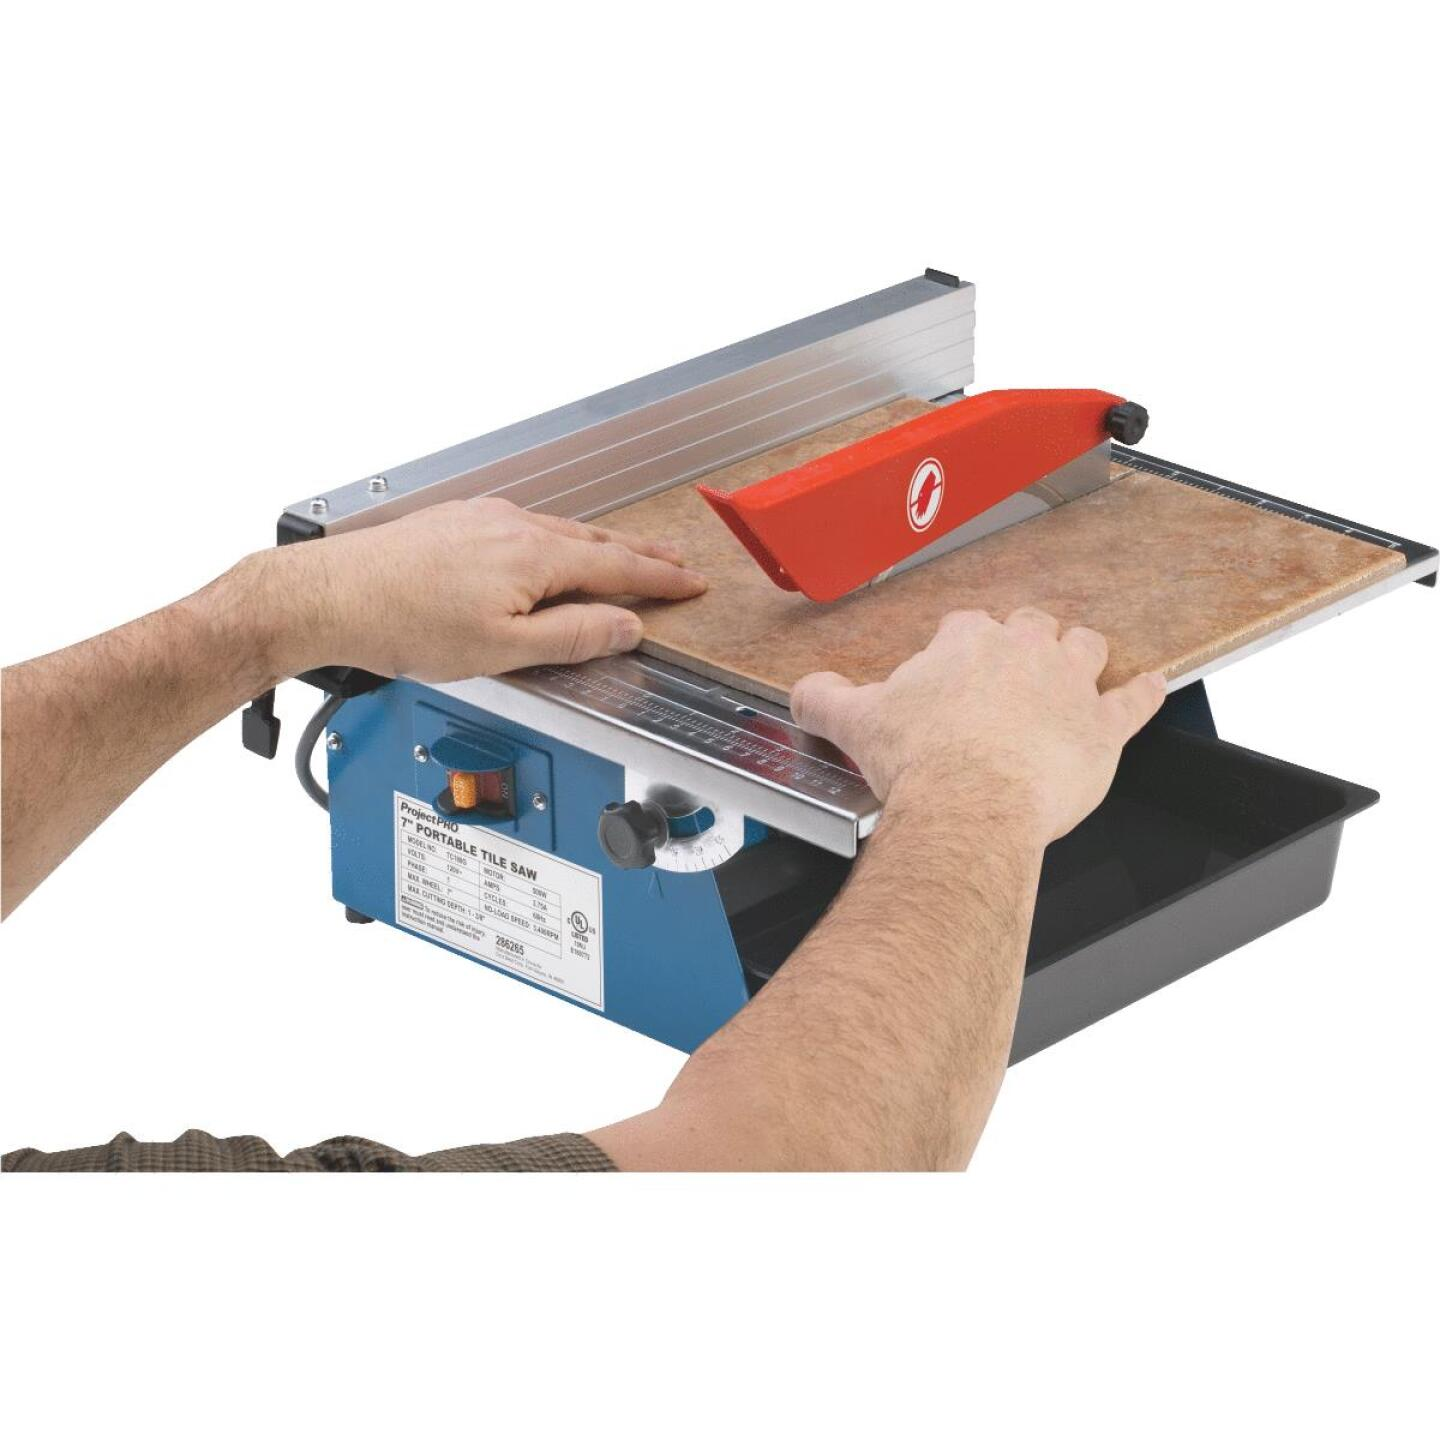 Project Pro 7 In. Portable Tile Saw Image 9